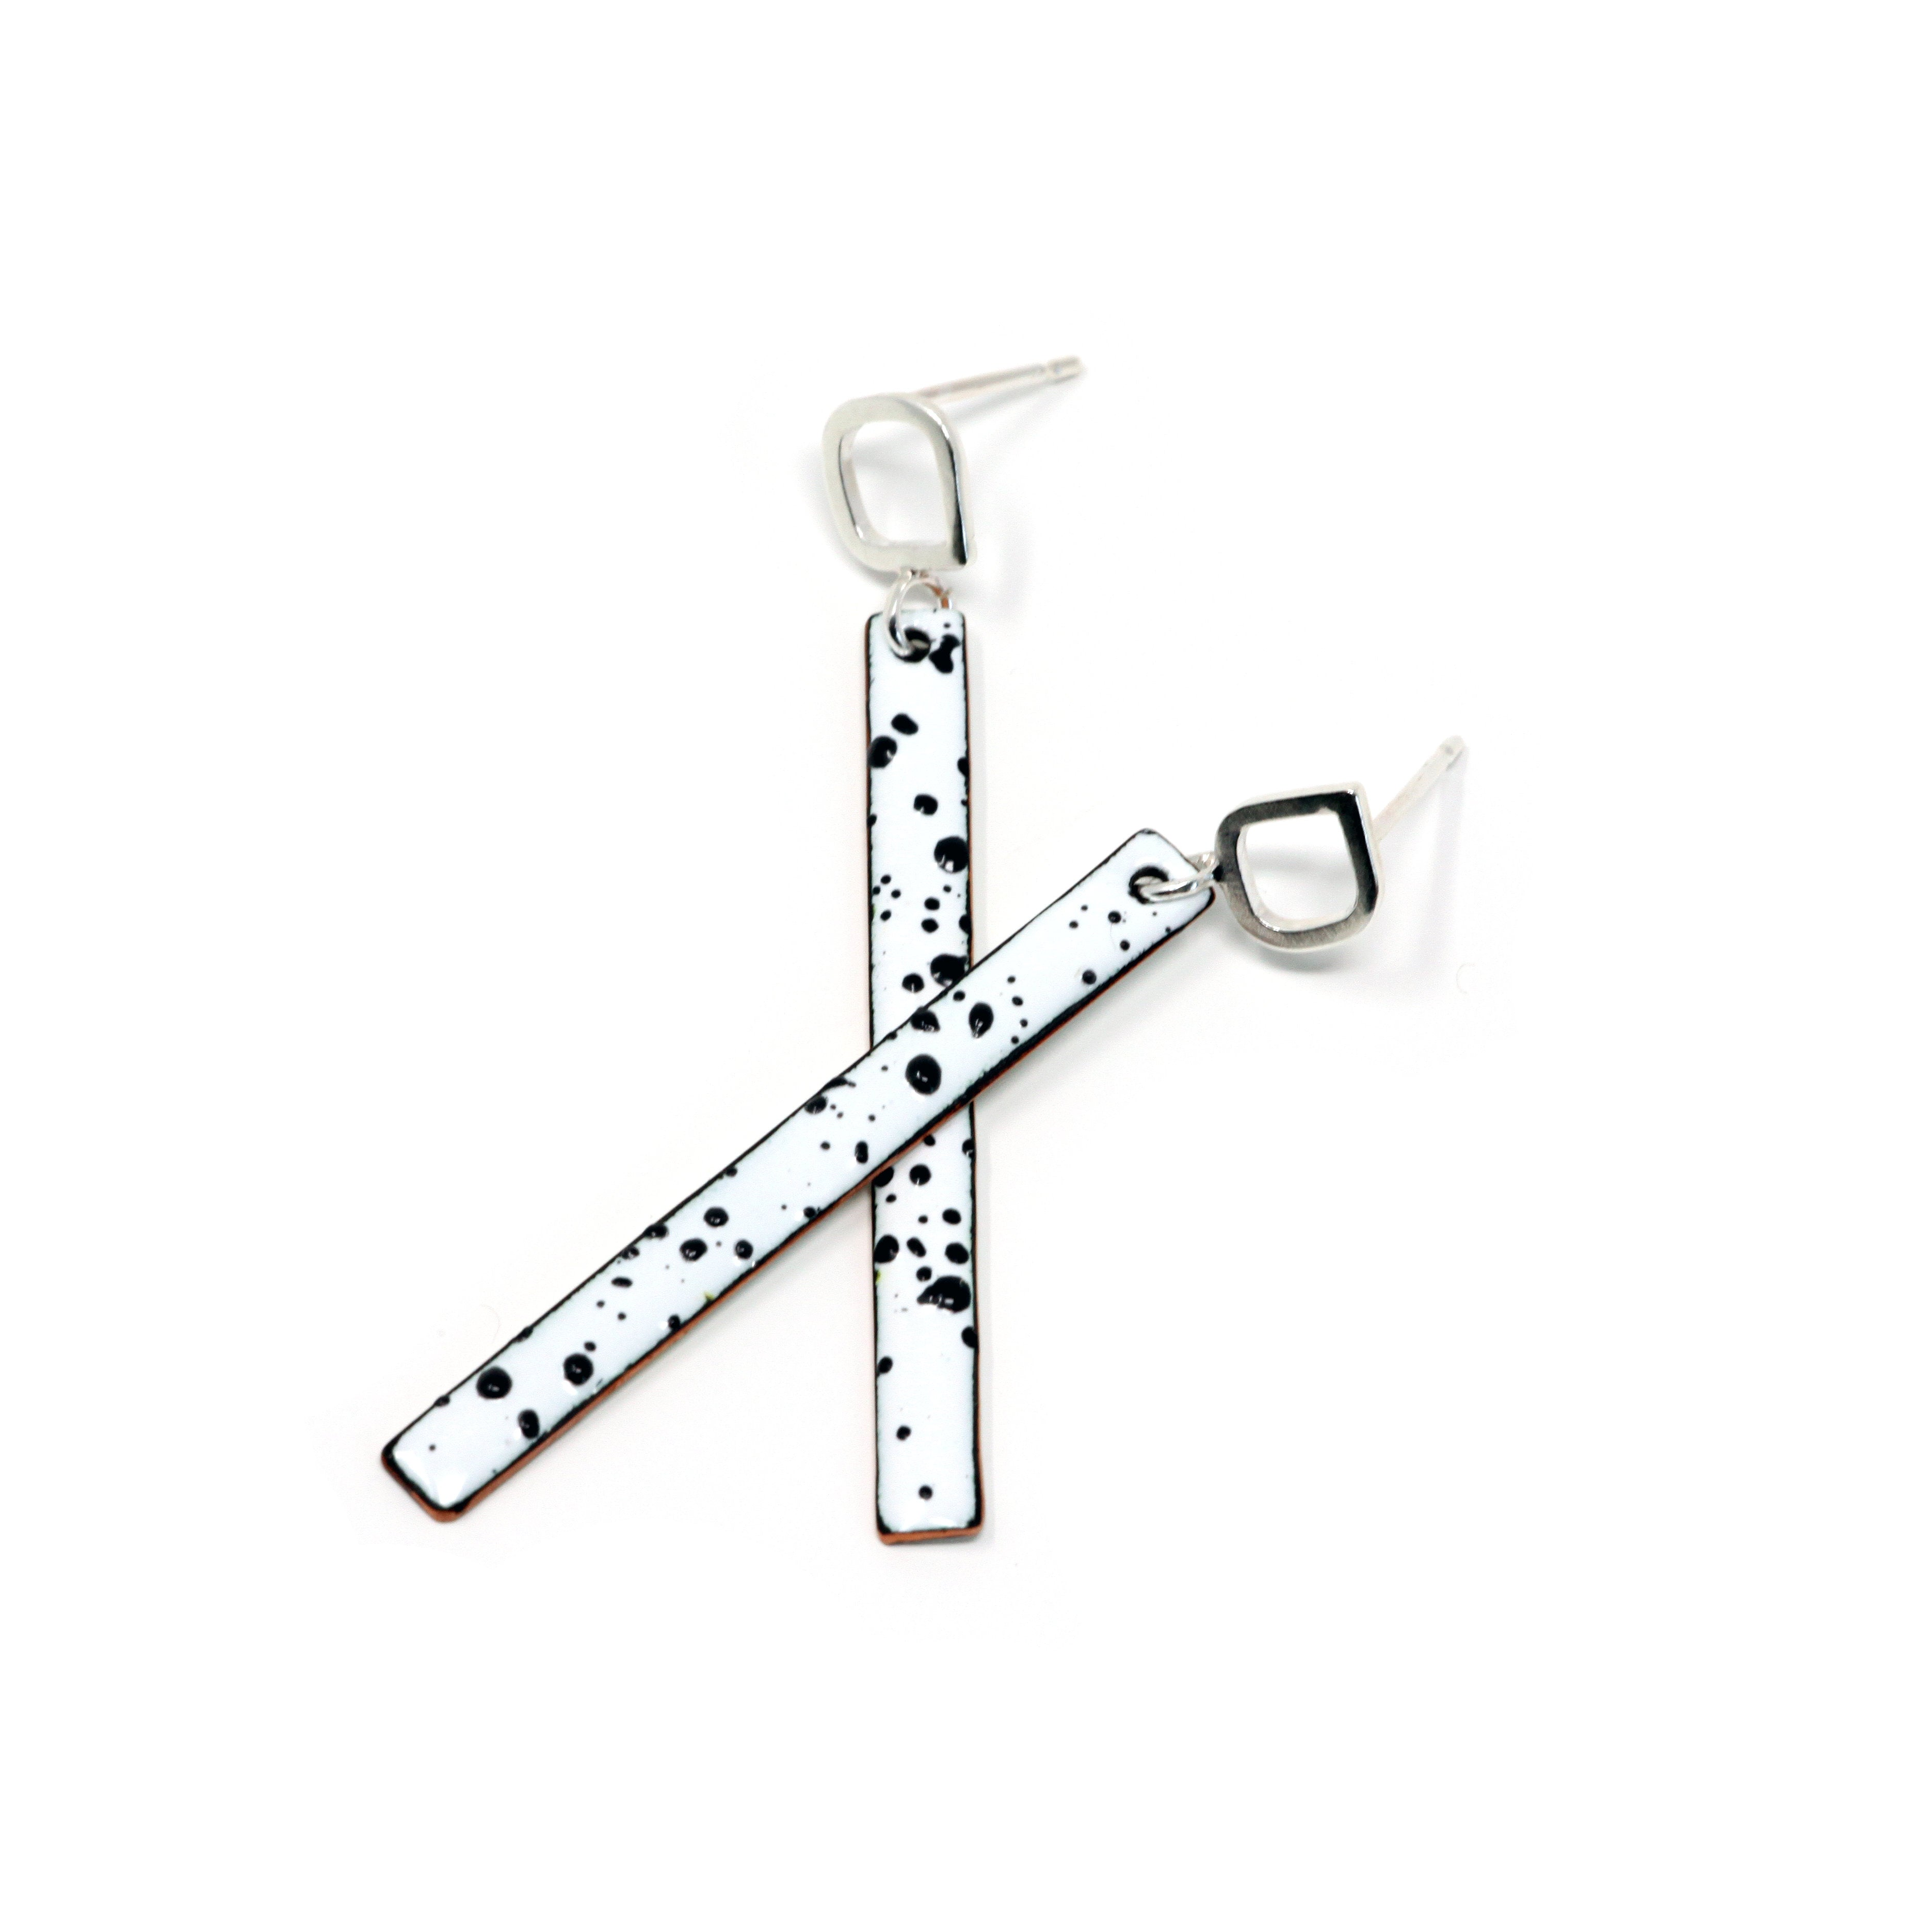 Stick B&W + Mount Silver Ear Studs